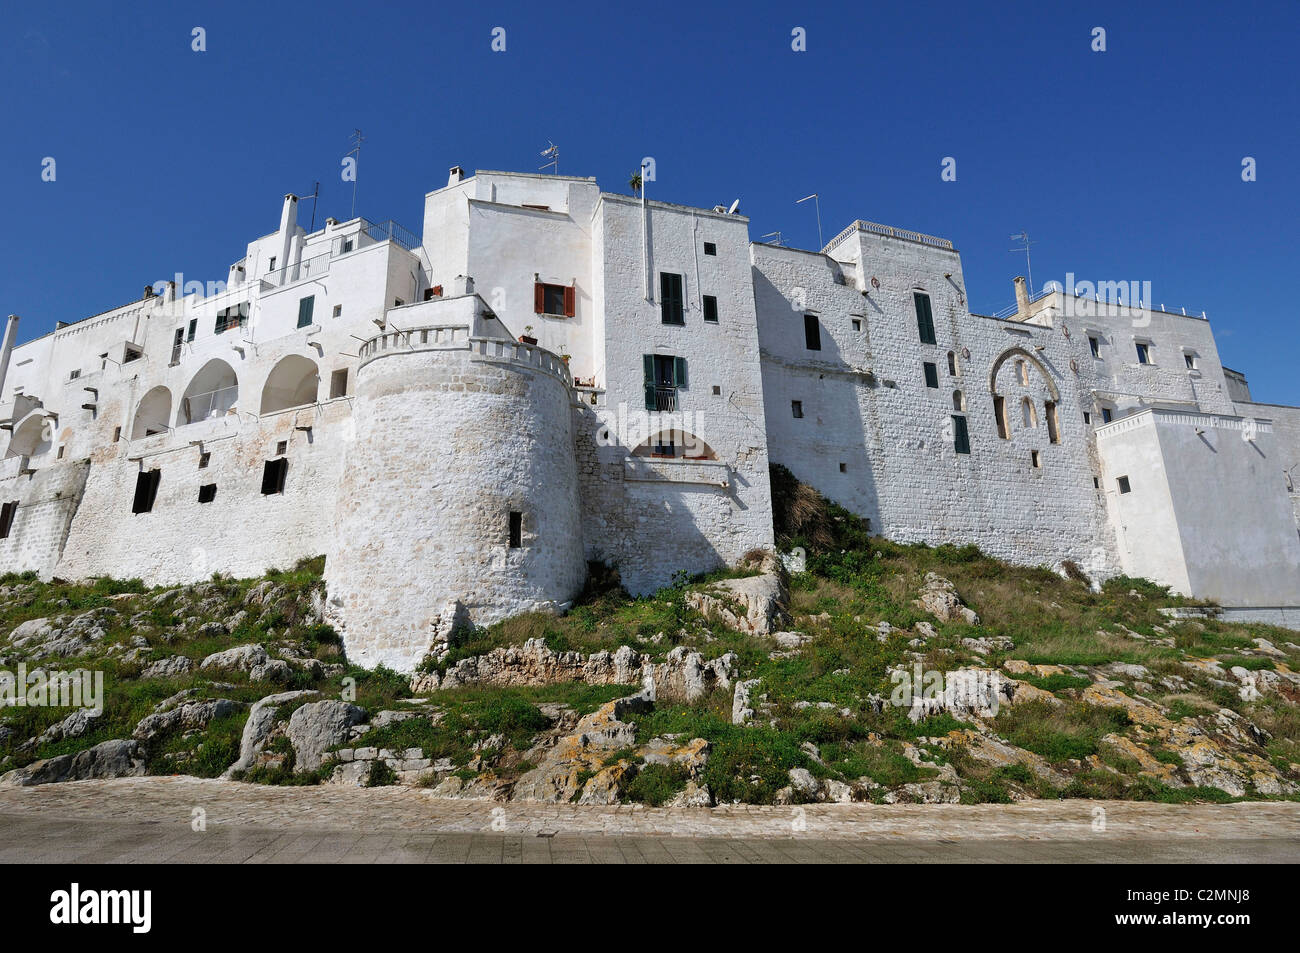 Ostuni. Puglia. Italy. Whitewashed houses and town walls. - Stock Image